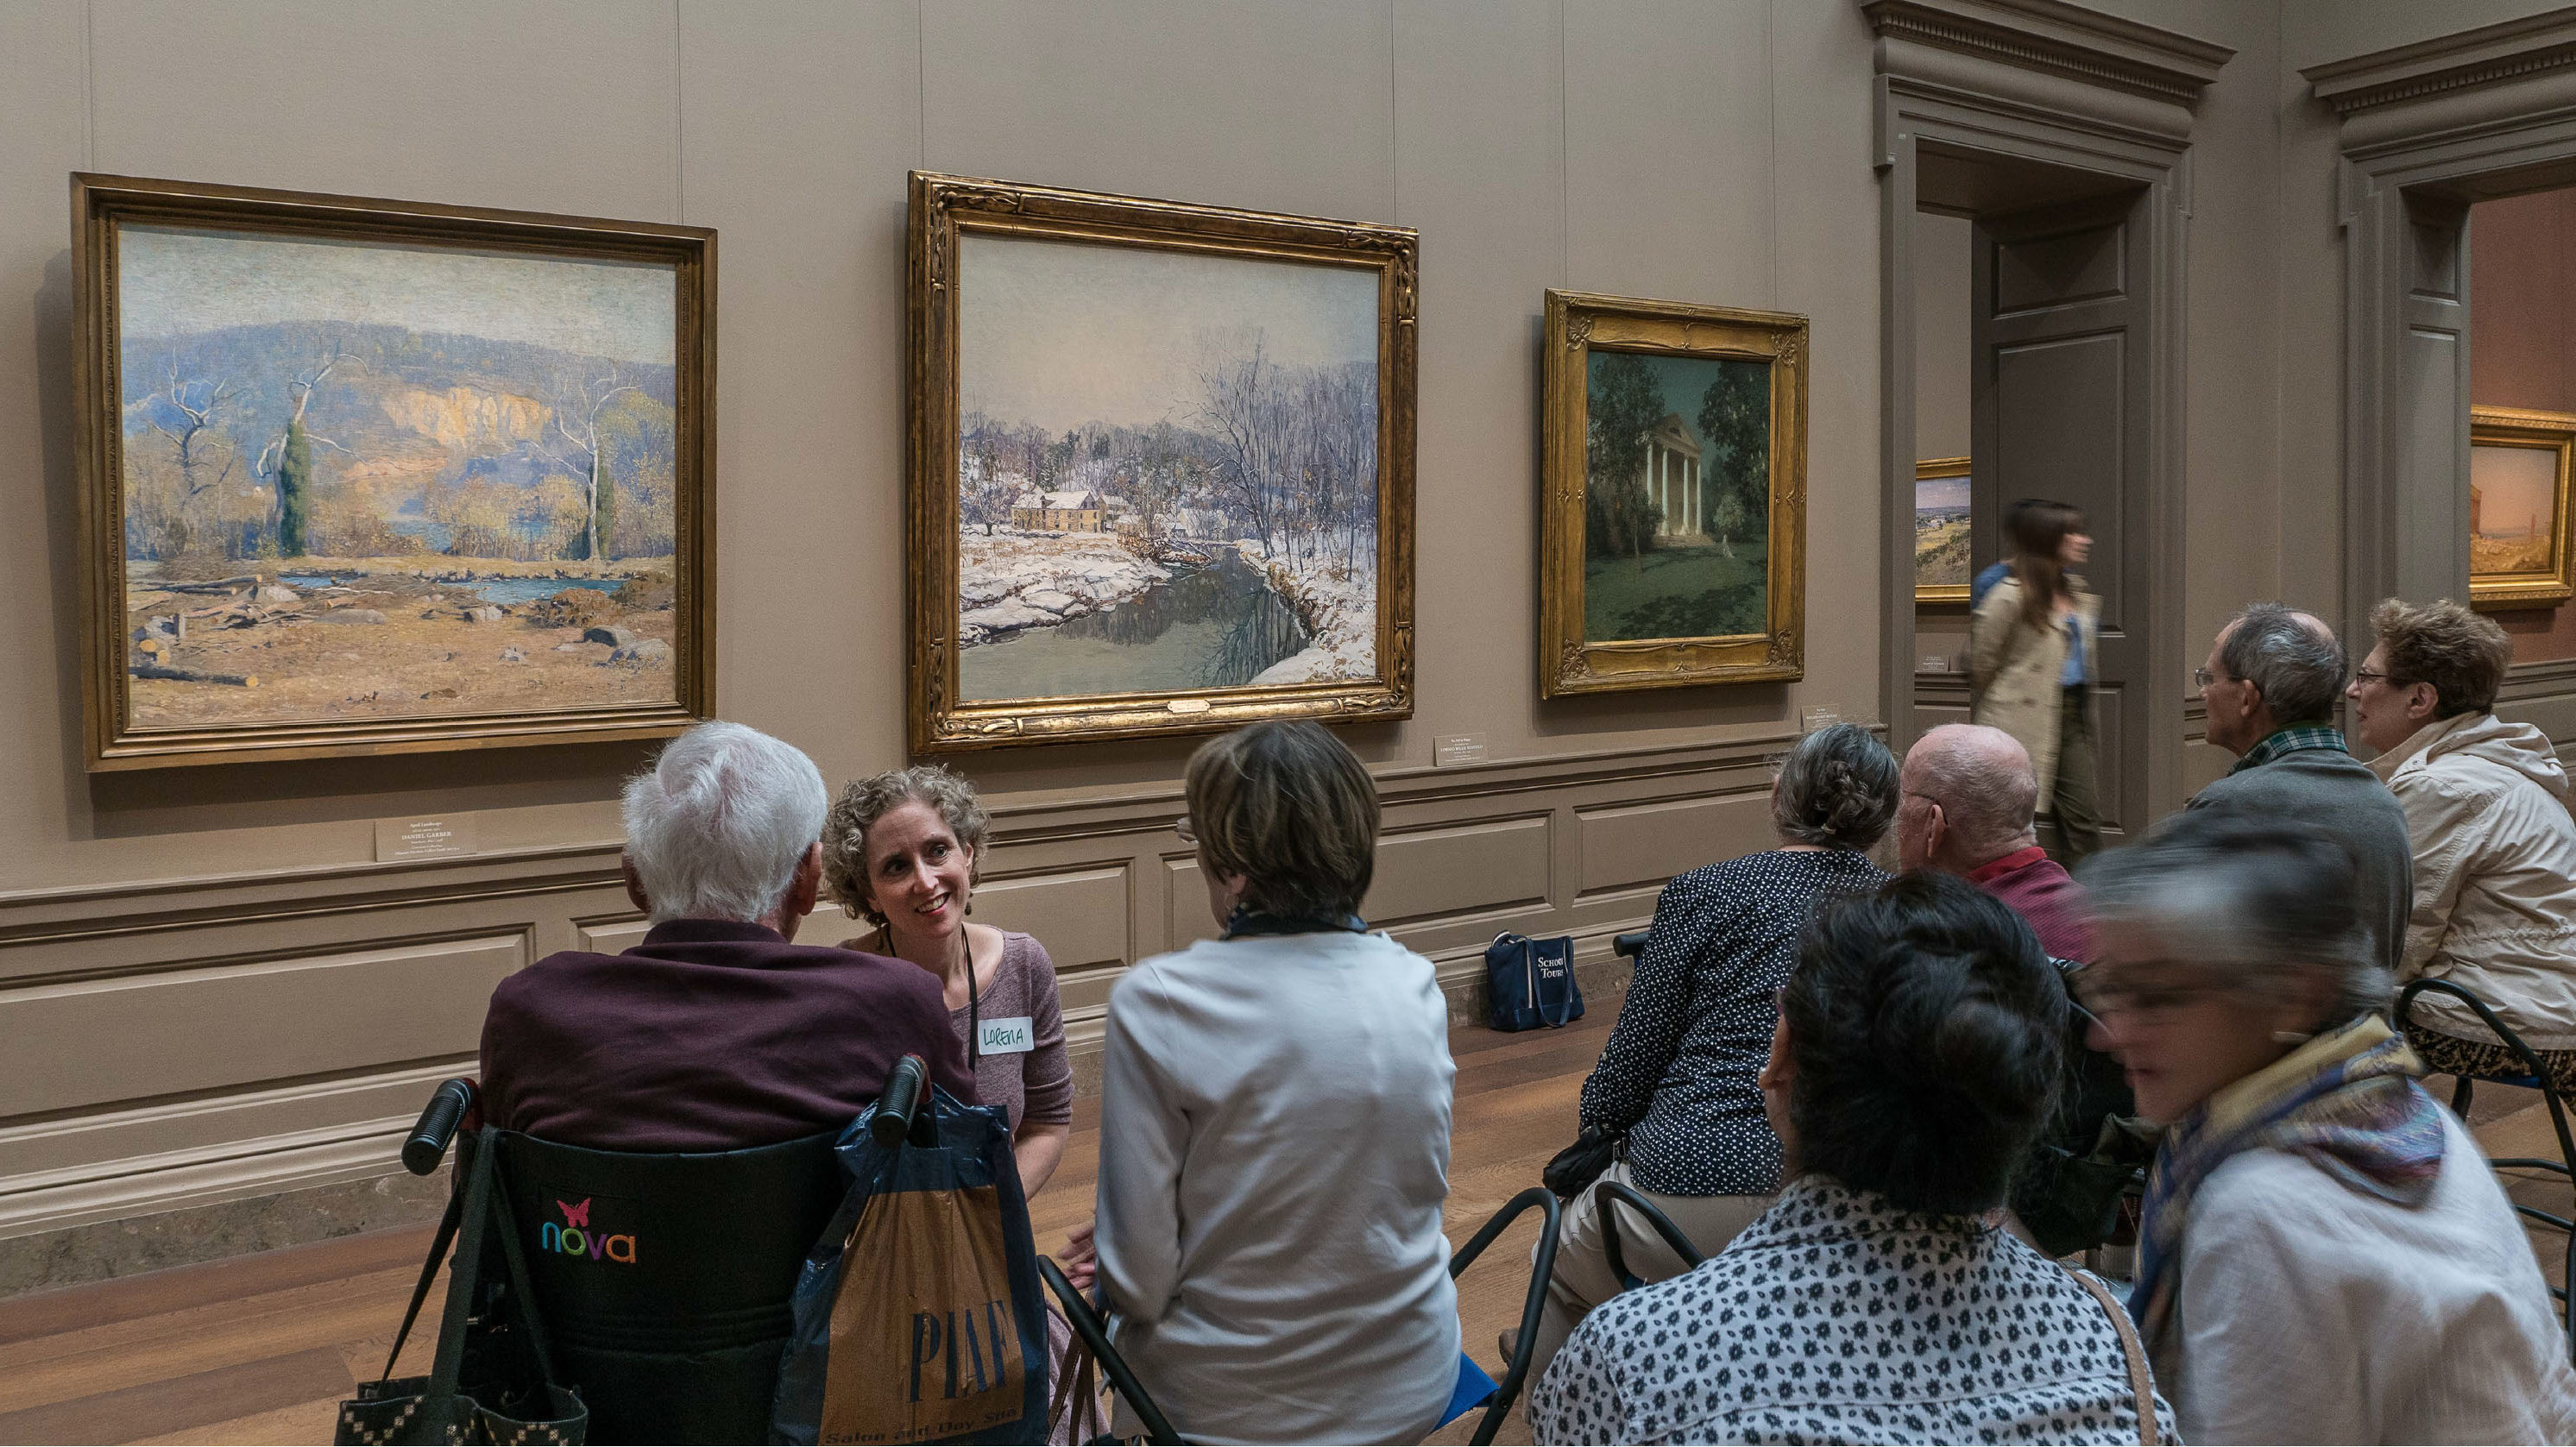 In a museum gallery in front of paintings, an educator kneels down talking to a group of program participants, one of whom is seated in a wheelchair.